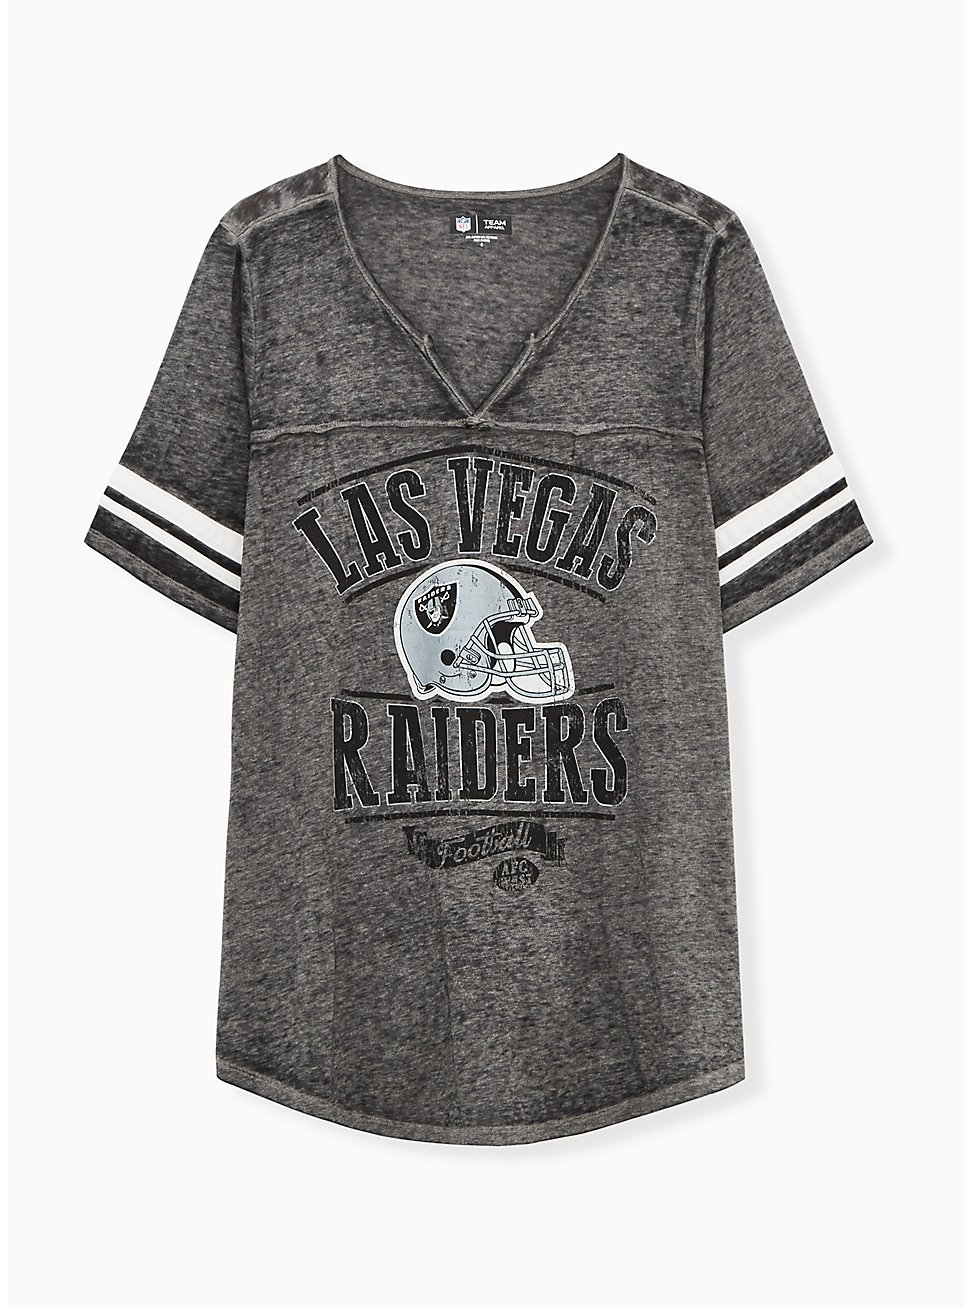 NFL Las Vegas Raiders Football Tee - Vintage Black, DEEP BLACK, hi-res